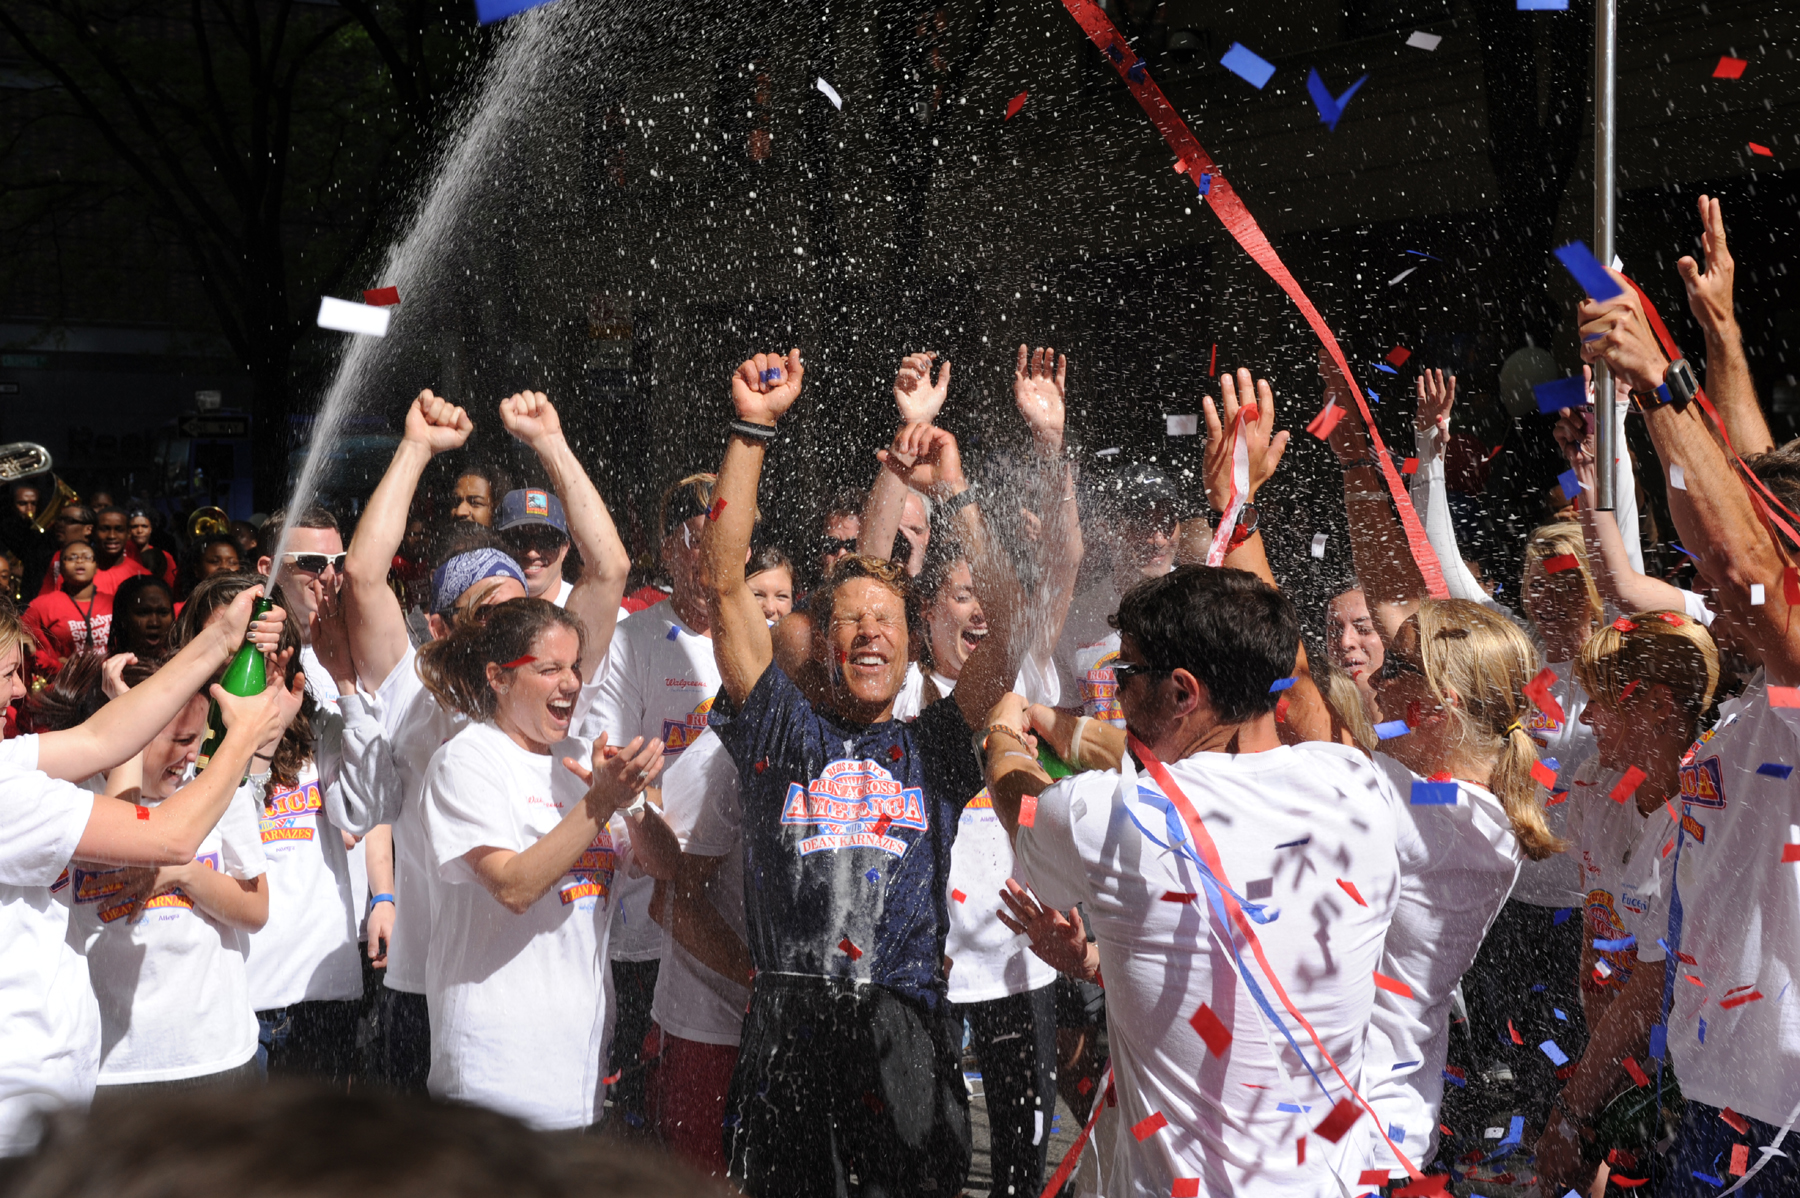 The sweet taste of champagne at the finish in NYC, May 10, 2011.